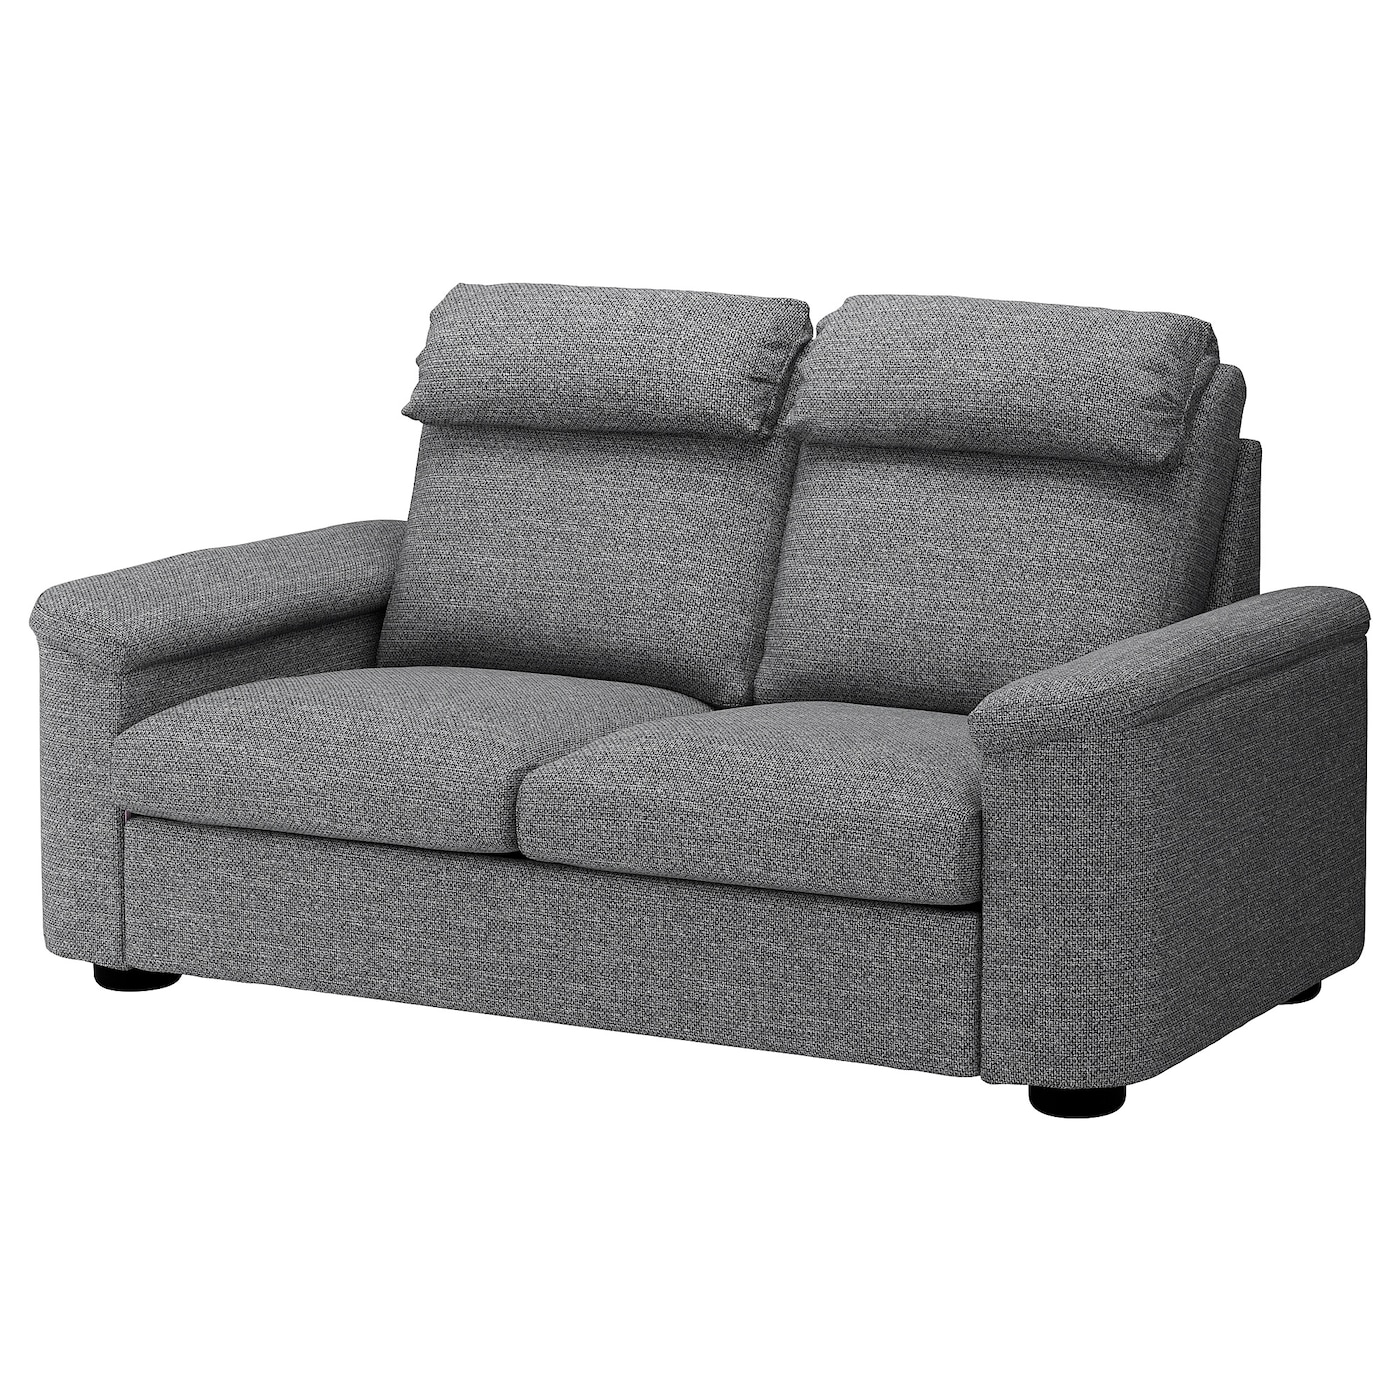 IKEA LIDHULT 2-seat sofa The cover is easy to keep clean since it is removable and machine washable.